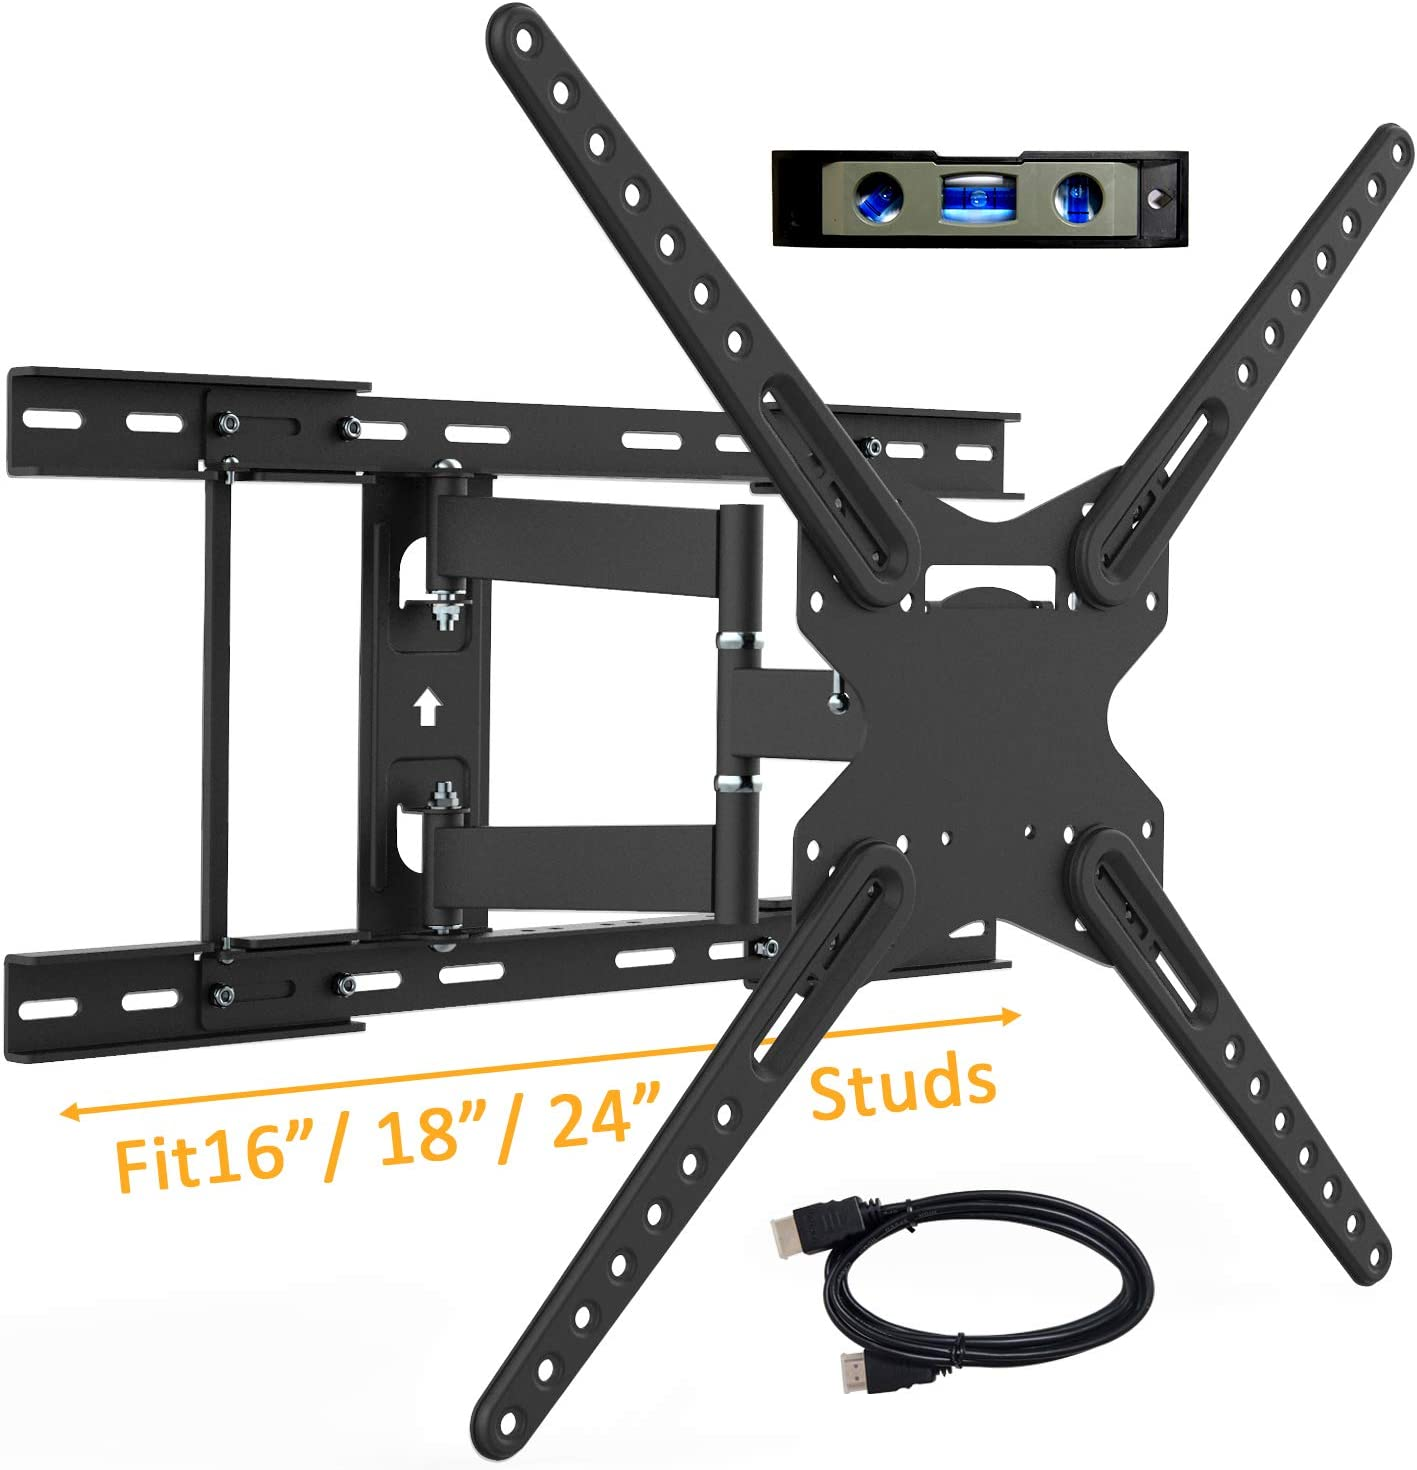 JUSTSTONE Universal Full Motion TV Wall Mount Bracket for 28-70 Inch Flat Curved LED OLED Screen with Swivel Articulating Arms Fits 16'' 18'' 24'' Wood Studs, Max VESA 600x400mm and Loads up to 110lbs